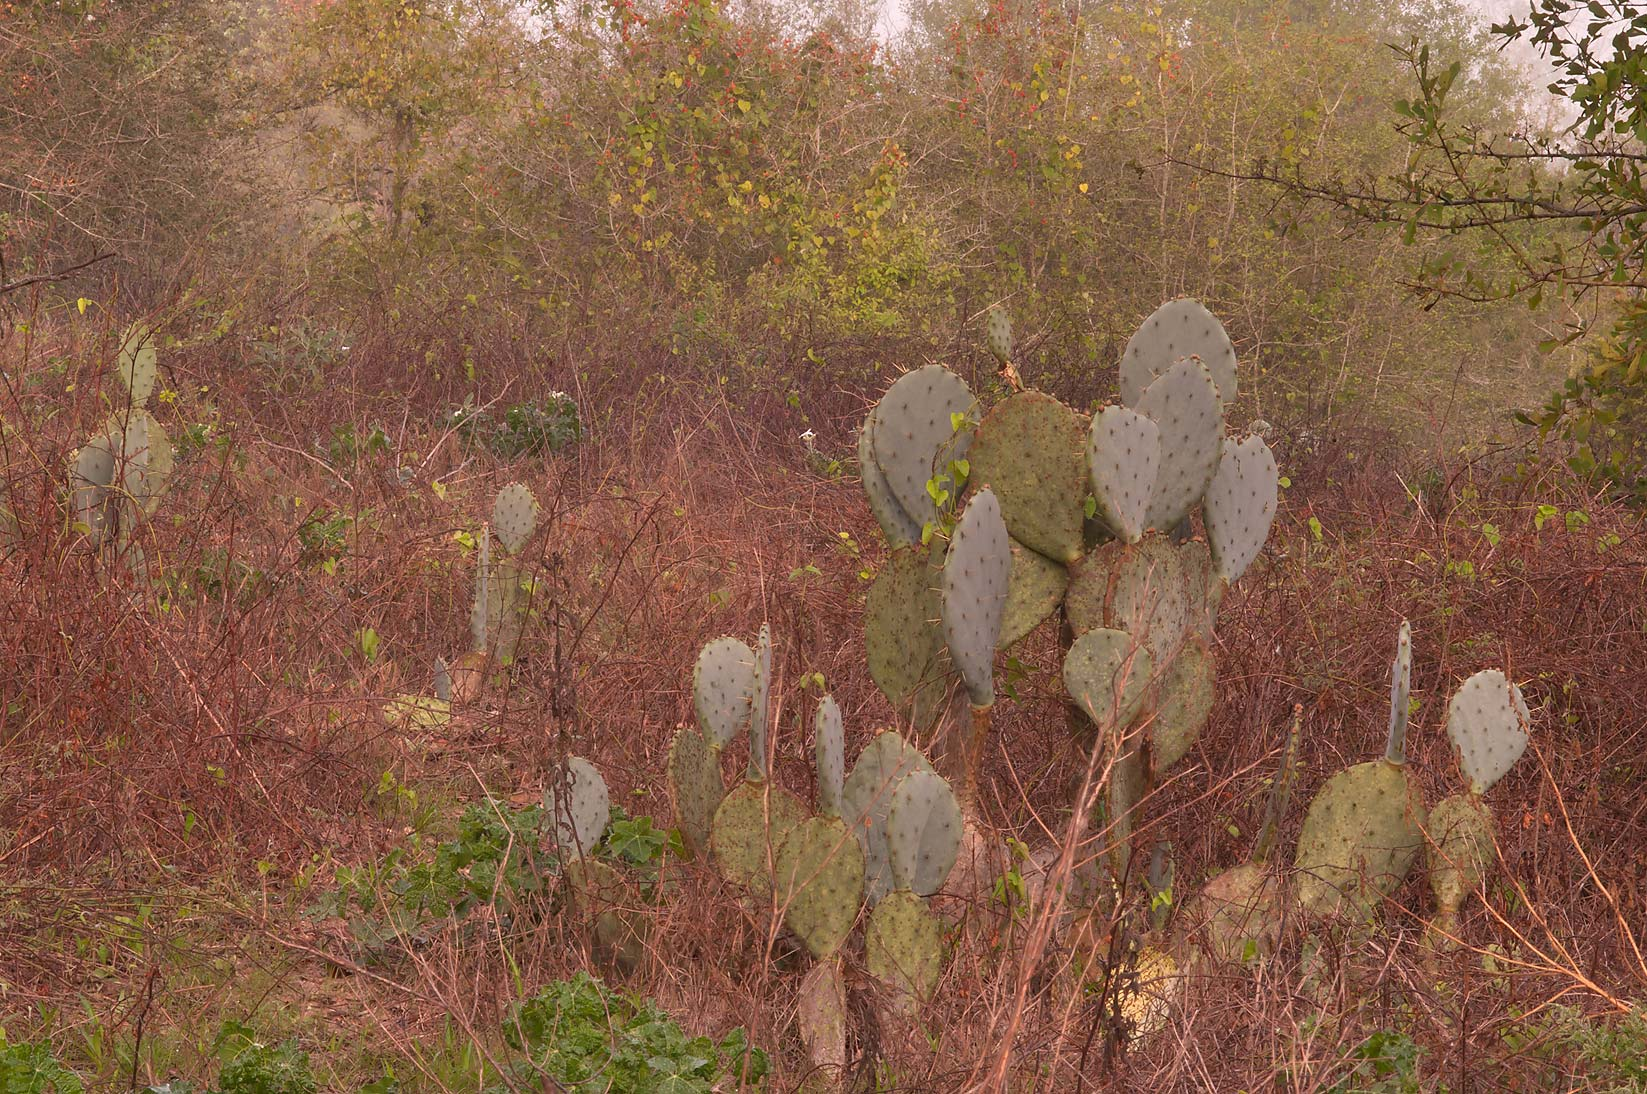 Prickly pears in Washington-on-the-Brazos State Historic Site. Washington, Texas